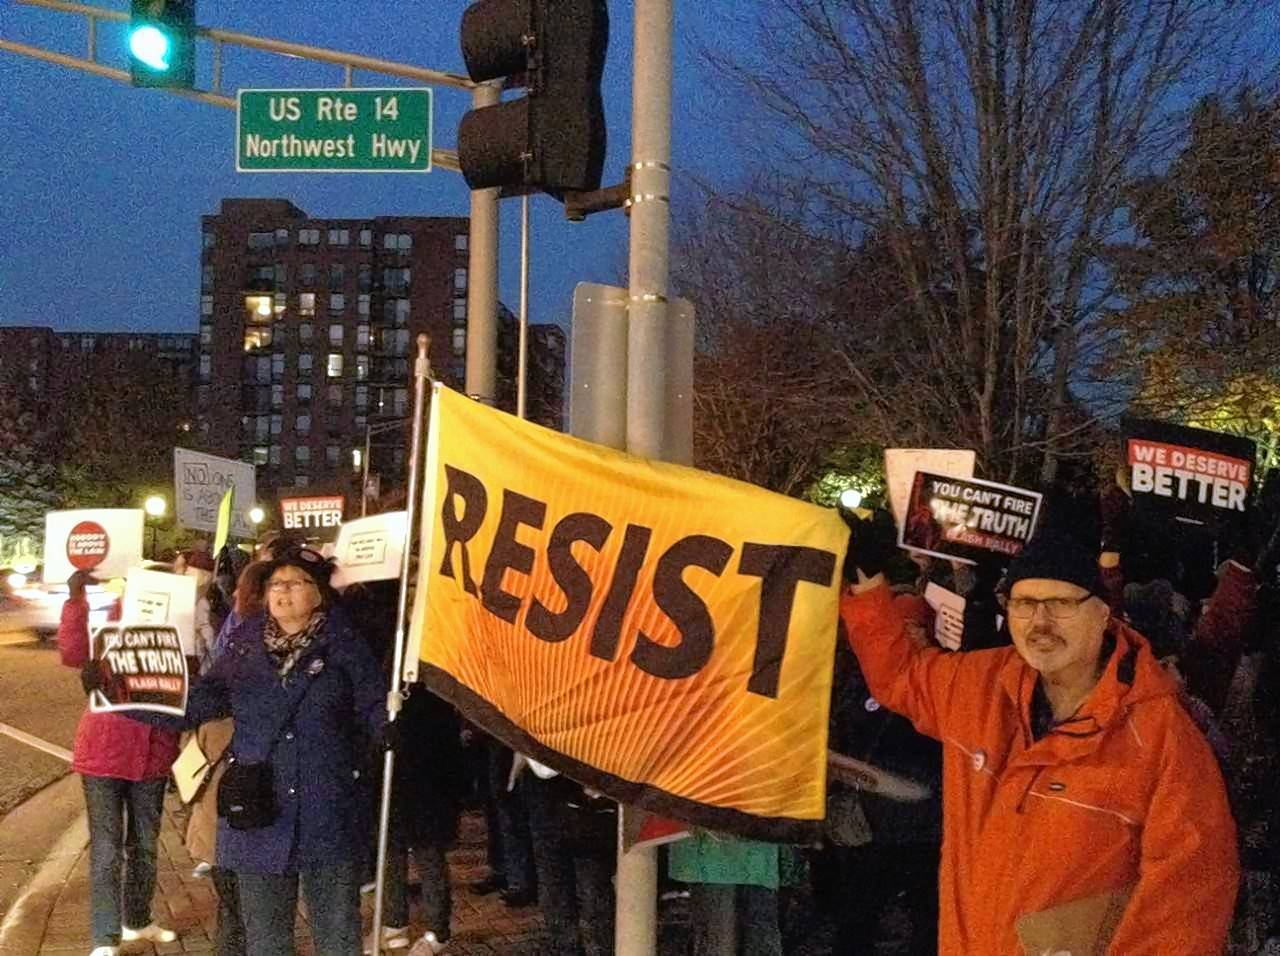 Suburban activists join national protest supporting Mueller probe